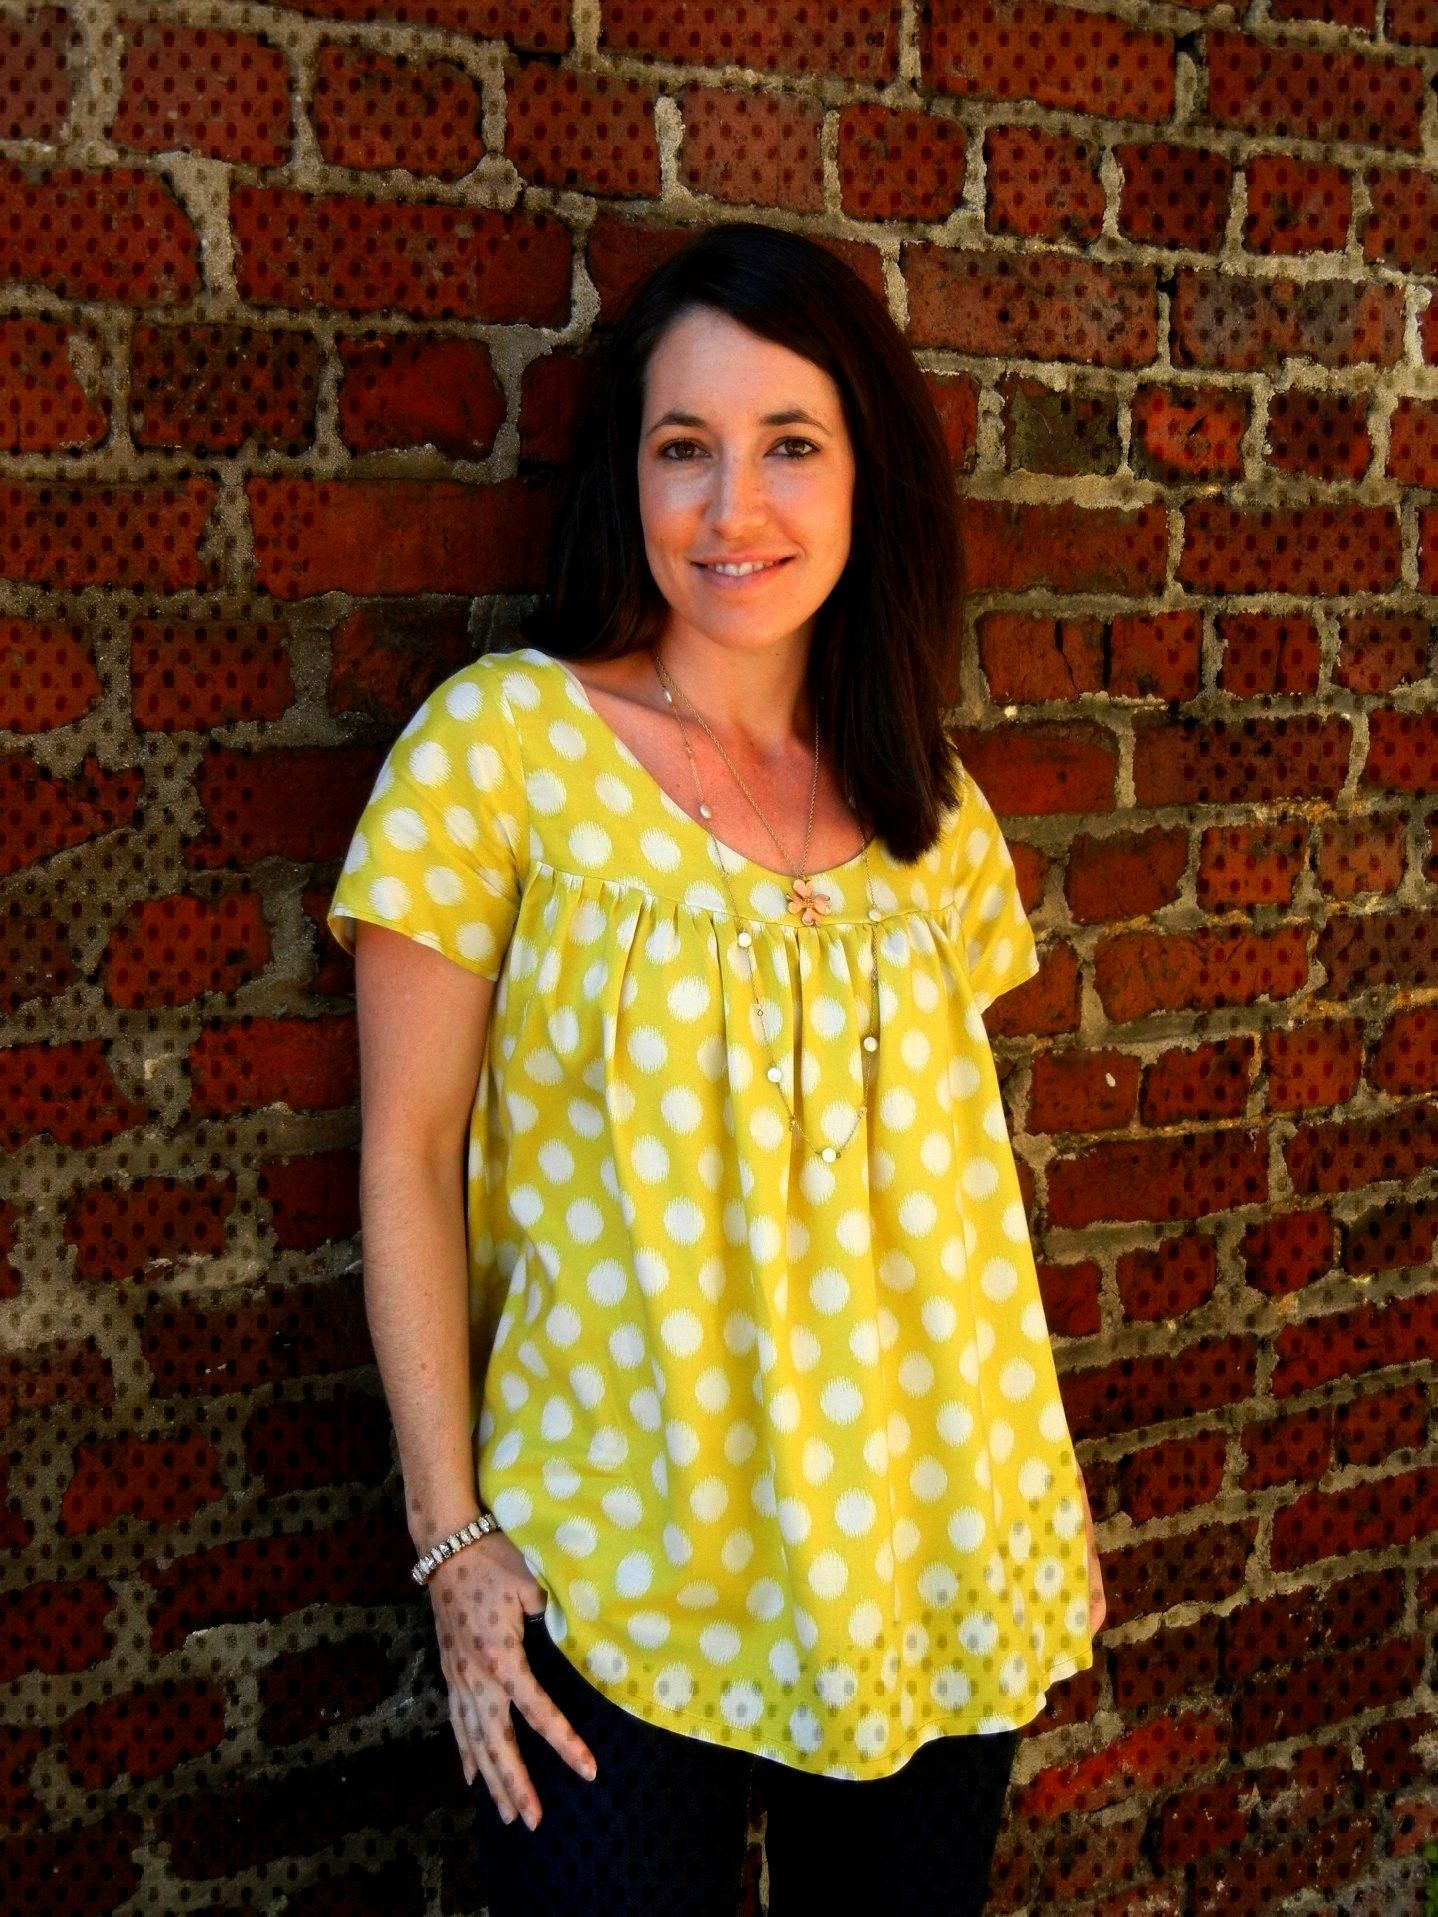 5 Flowing Blouses to Sew | Voila Blouse by Cali Faye | sewn by Sew Charleston | Radiant Home Studi